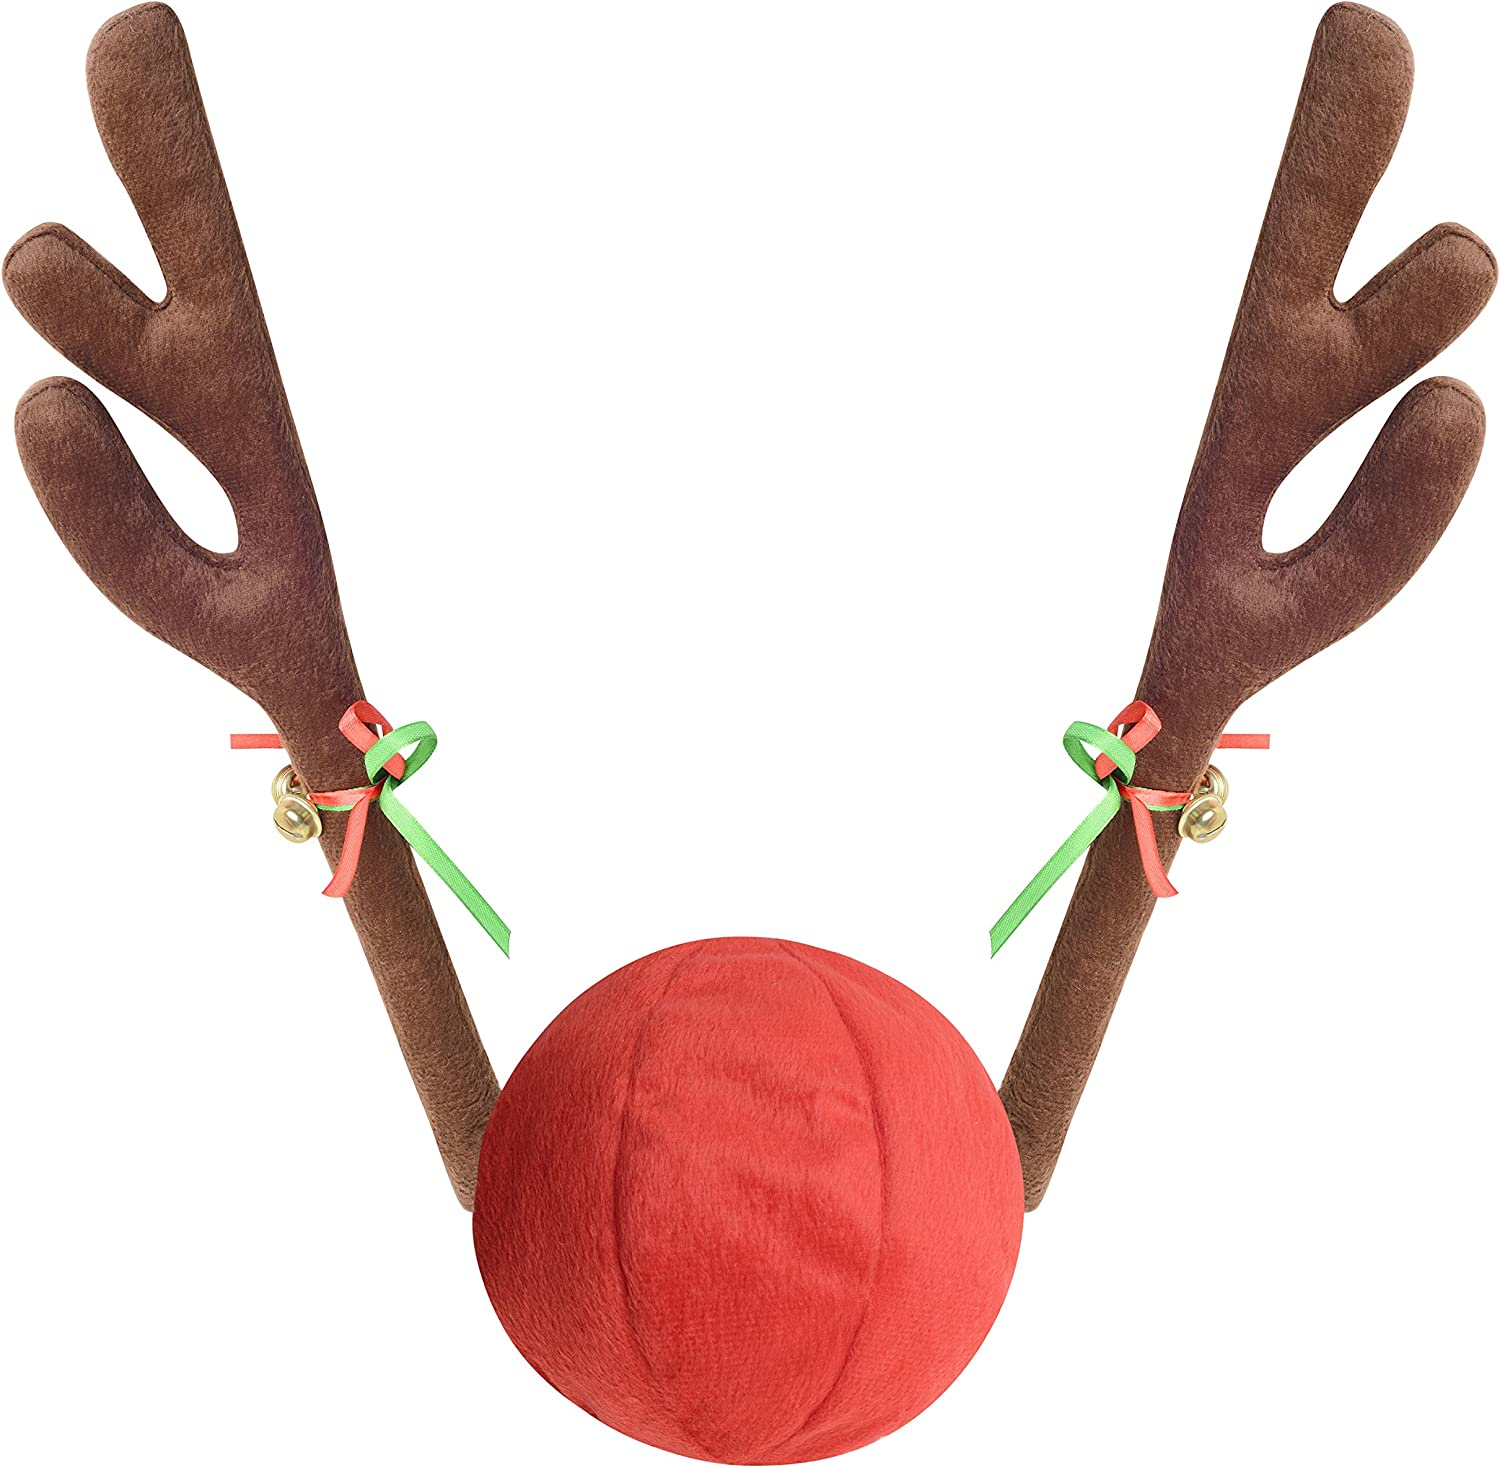 Mak Tools Christmas Reindeer Antlers Car Decoration Kit with Jingle Bell Brown, Large